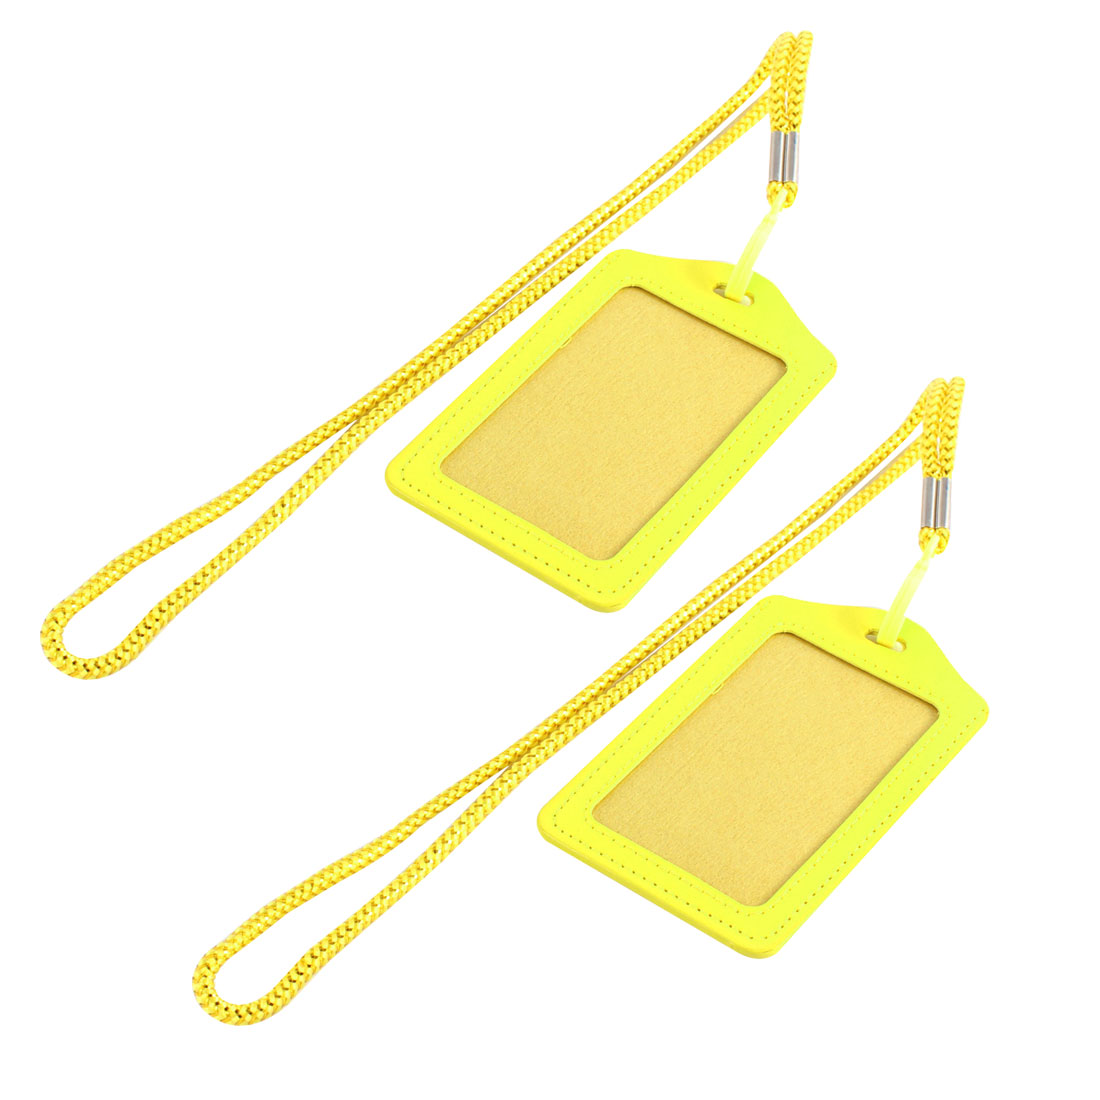 Worker Faux Leather Vertical ID Name Employee Card Tag Badge Holder Carrier w Lanyard 2pcs Yellow